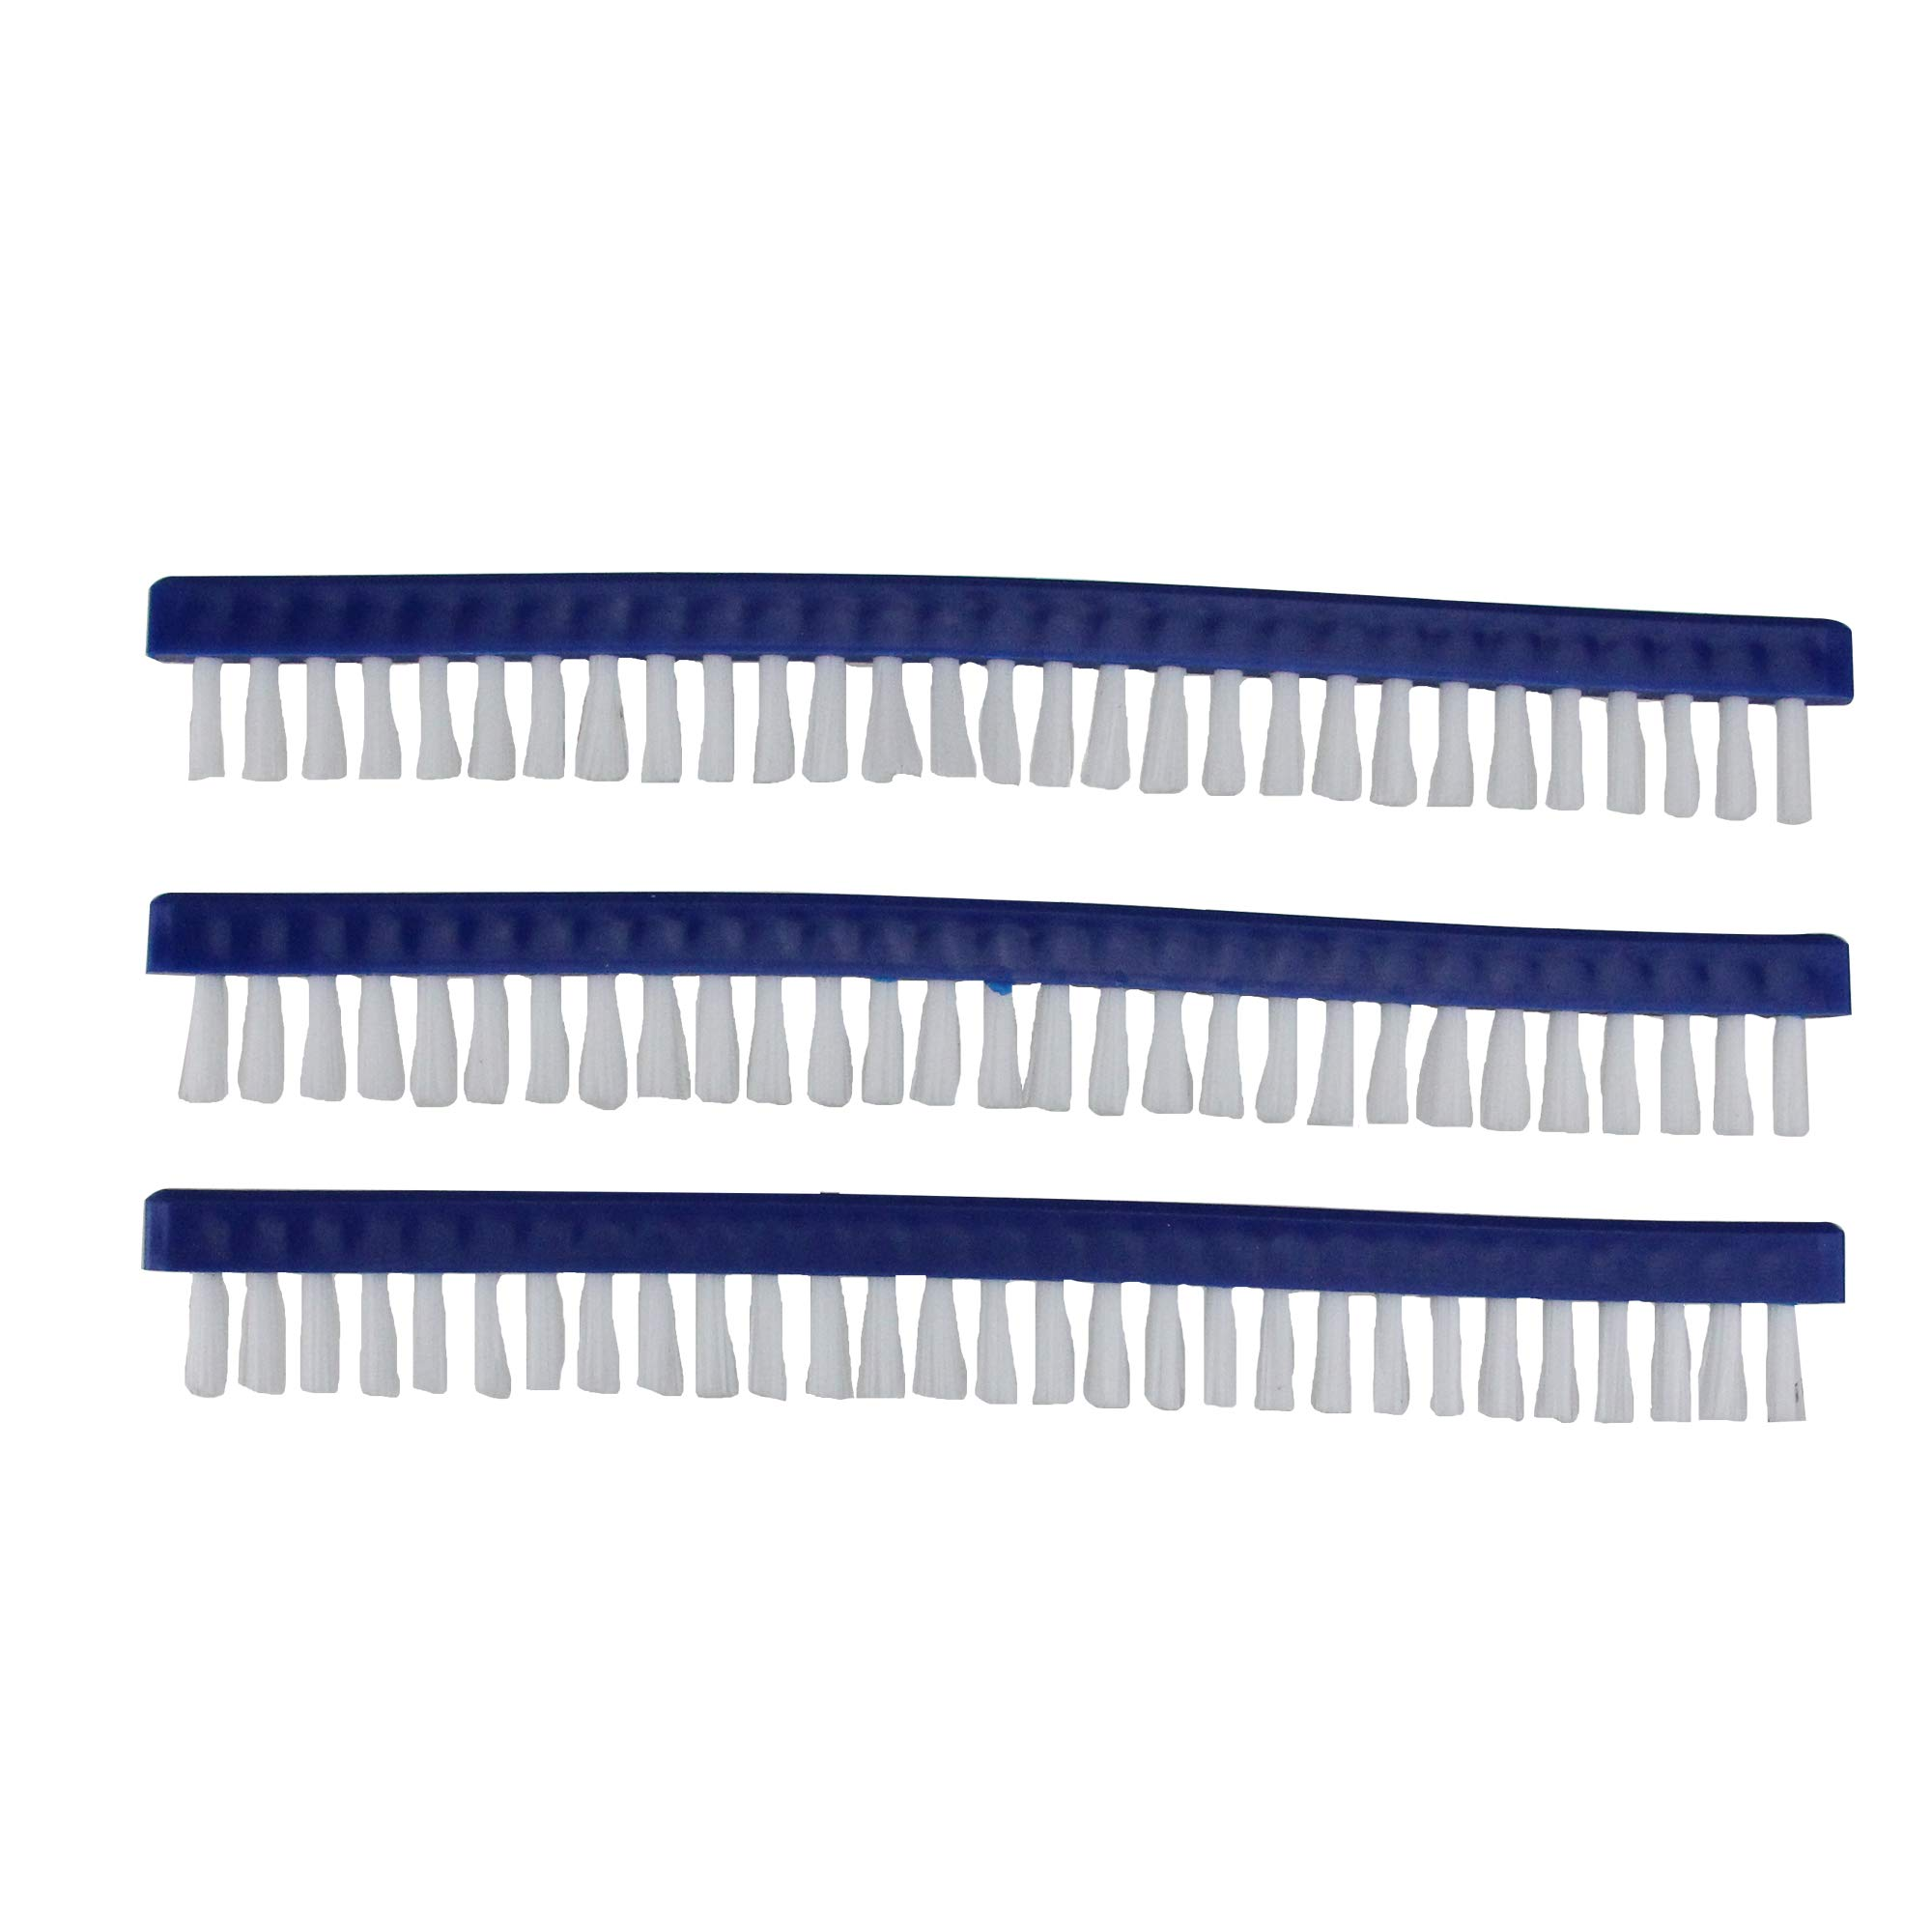 Pack of 3 Blue Long Replacement Brushes for Swimming Pools and Spas Vacuum Head 9""